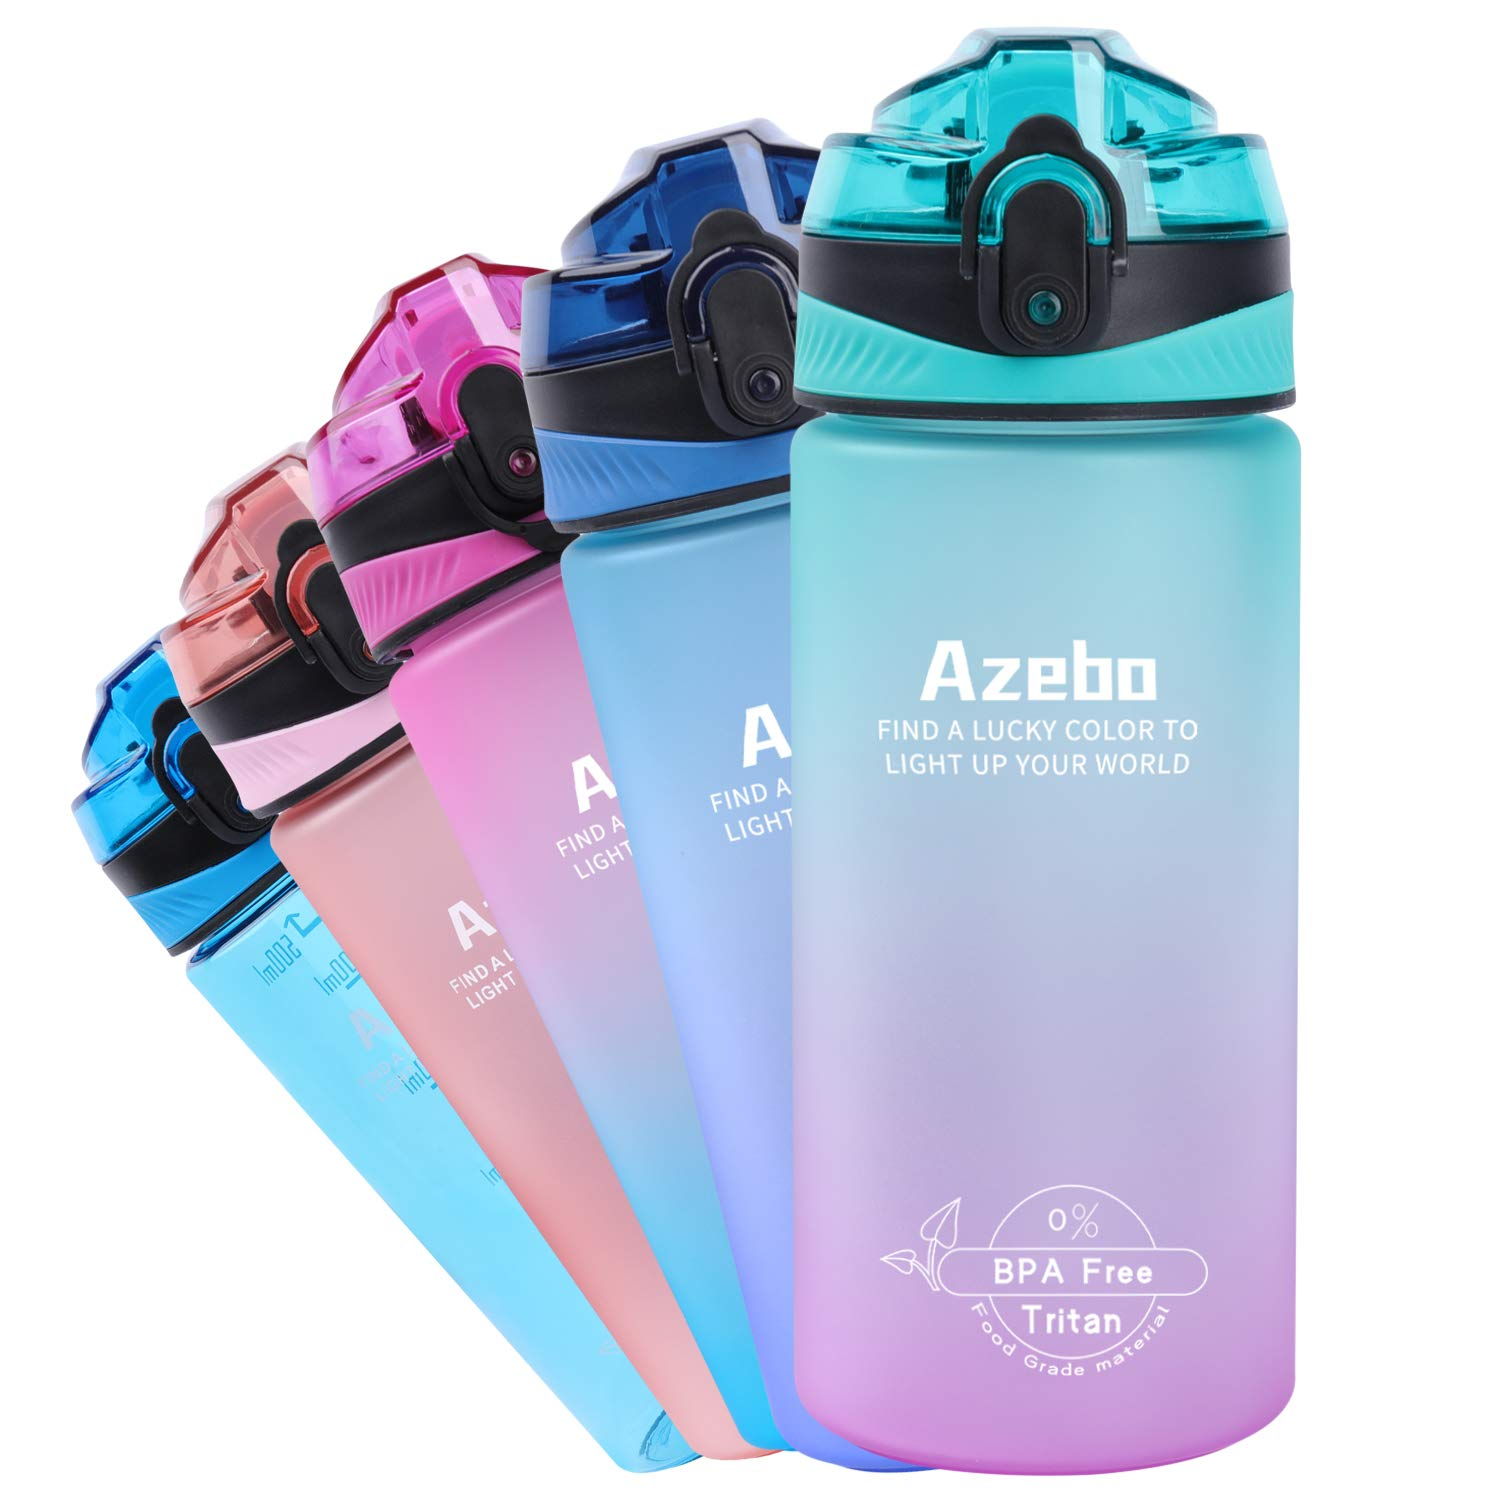 Azebo 18oz Small Water Bottle with Time Marker To Drink & Removable Strainer Infuser Tritan BPA Free Non-Toxic 500ml for Fitness Sports Outdoors and Office Mint Green/Pink Gradient